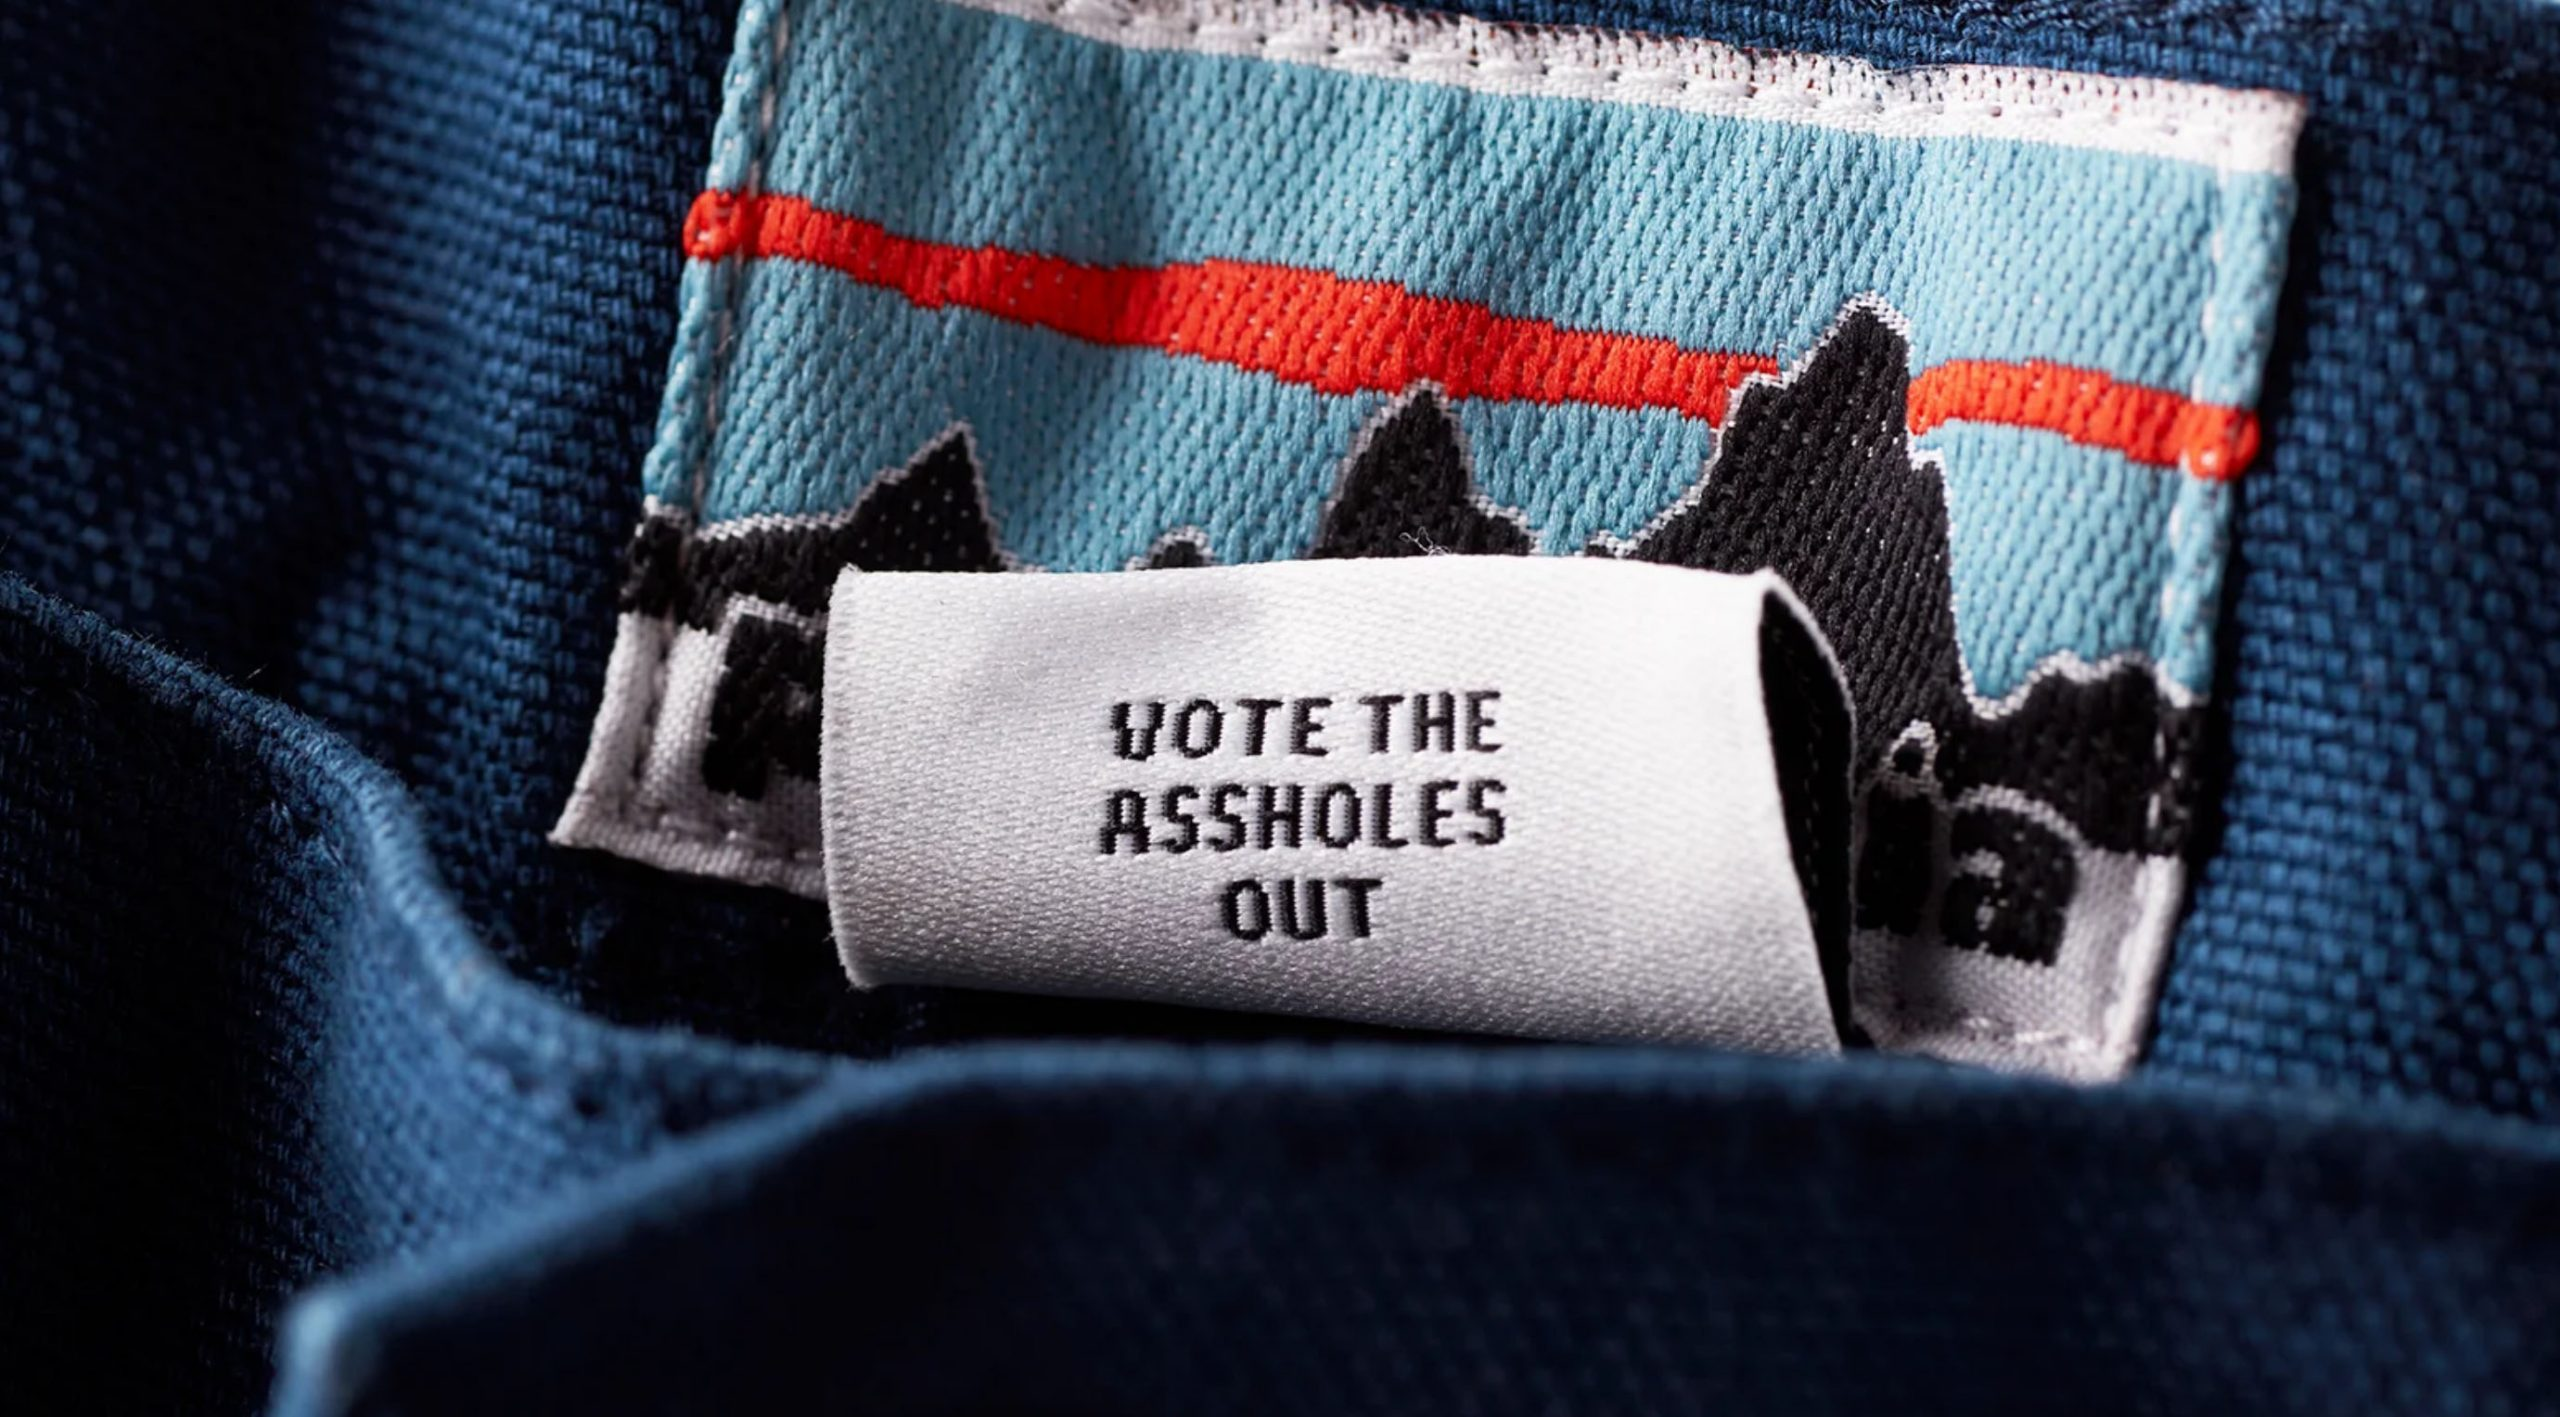 Patagonia's 'Vote the Assholes Out' Tags